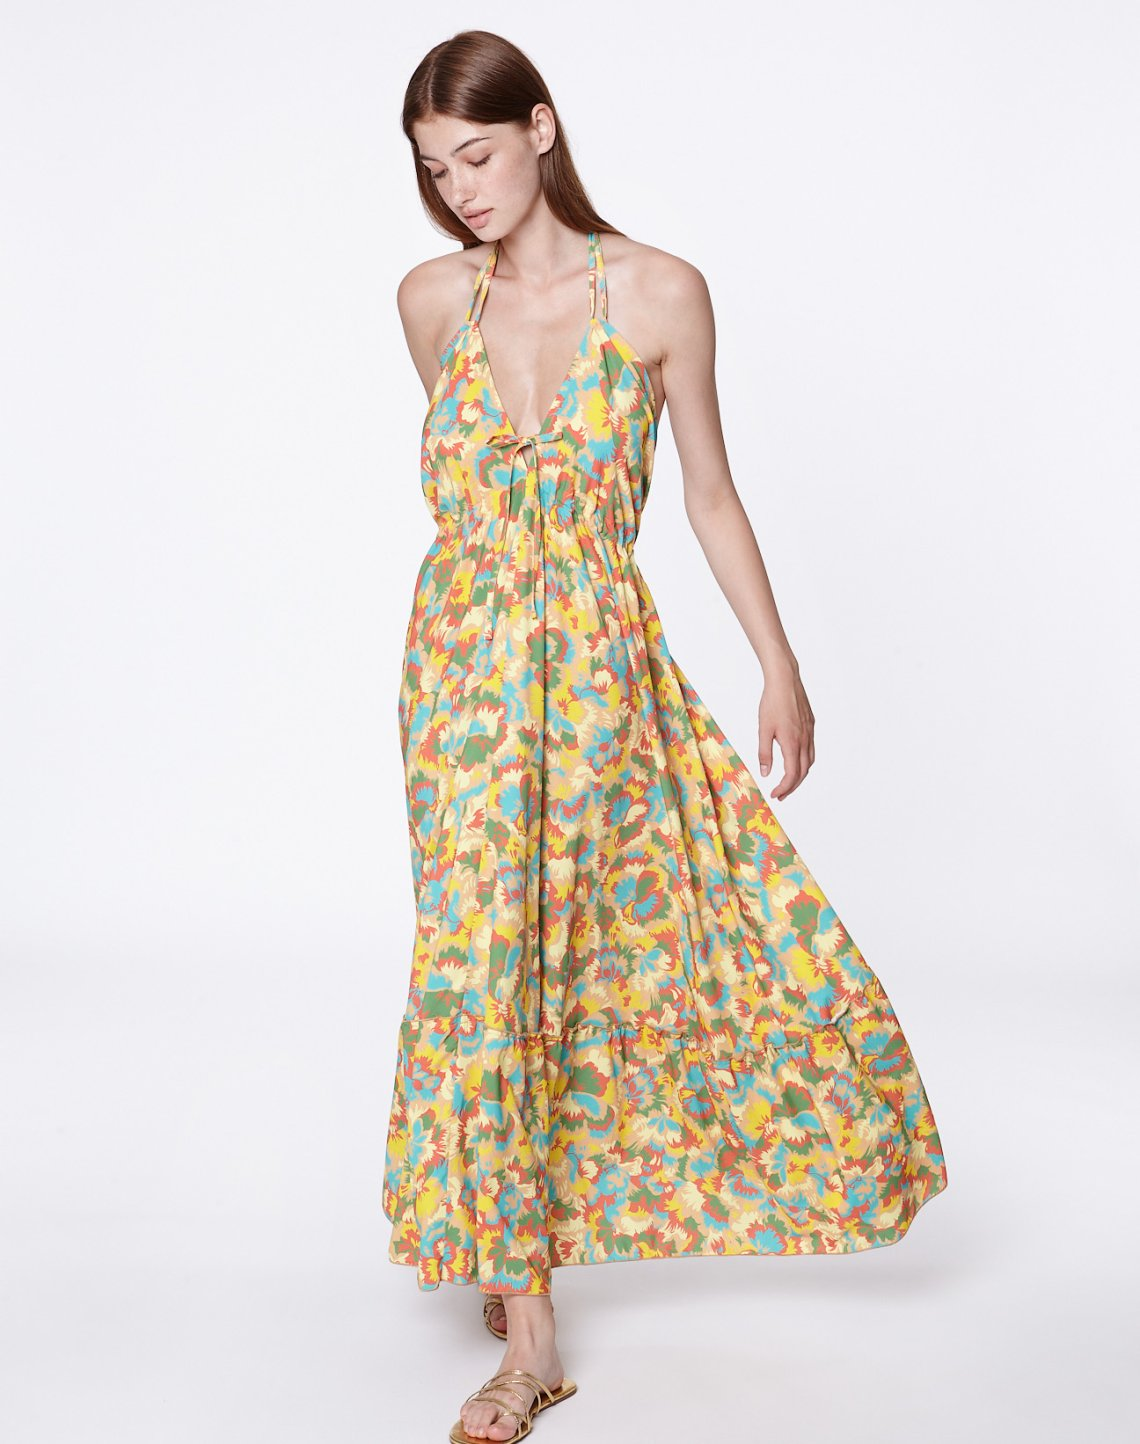 Printed axi dress with opening at the back